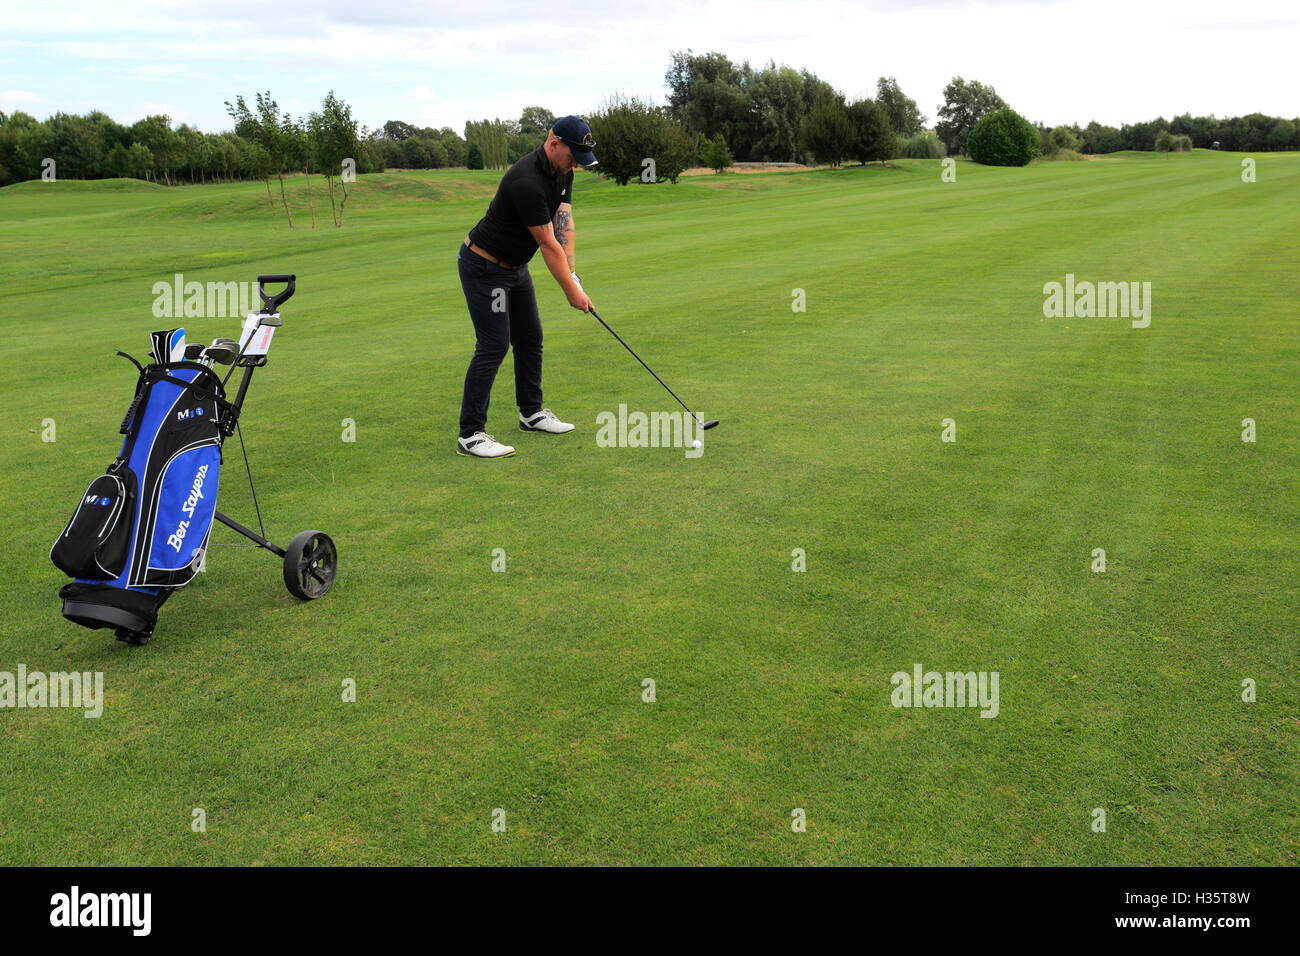 golfer drives from the tee on a rural golf course, Cambridgeshire - Stock Image